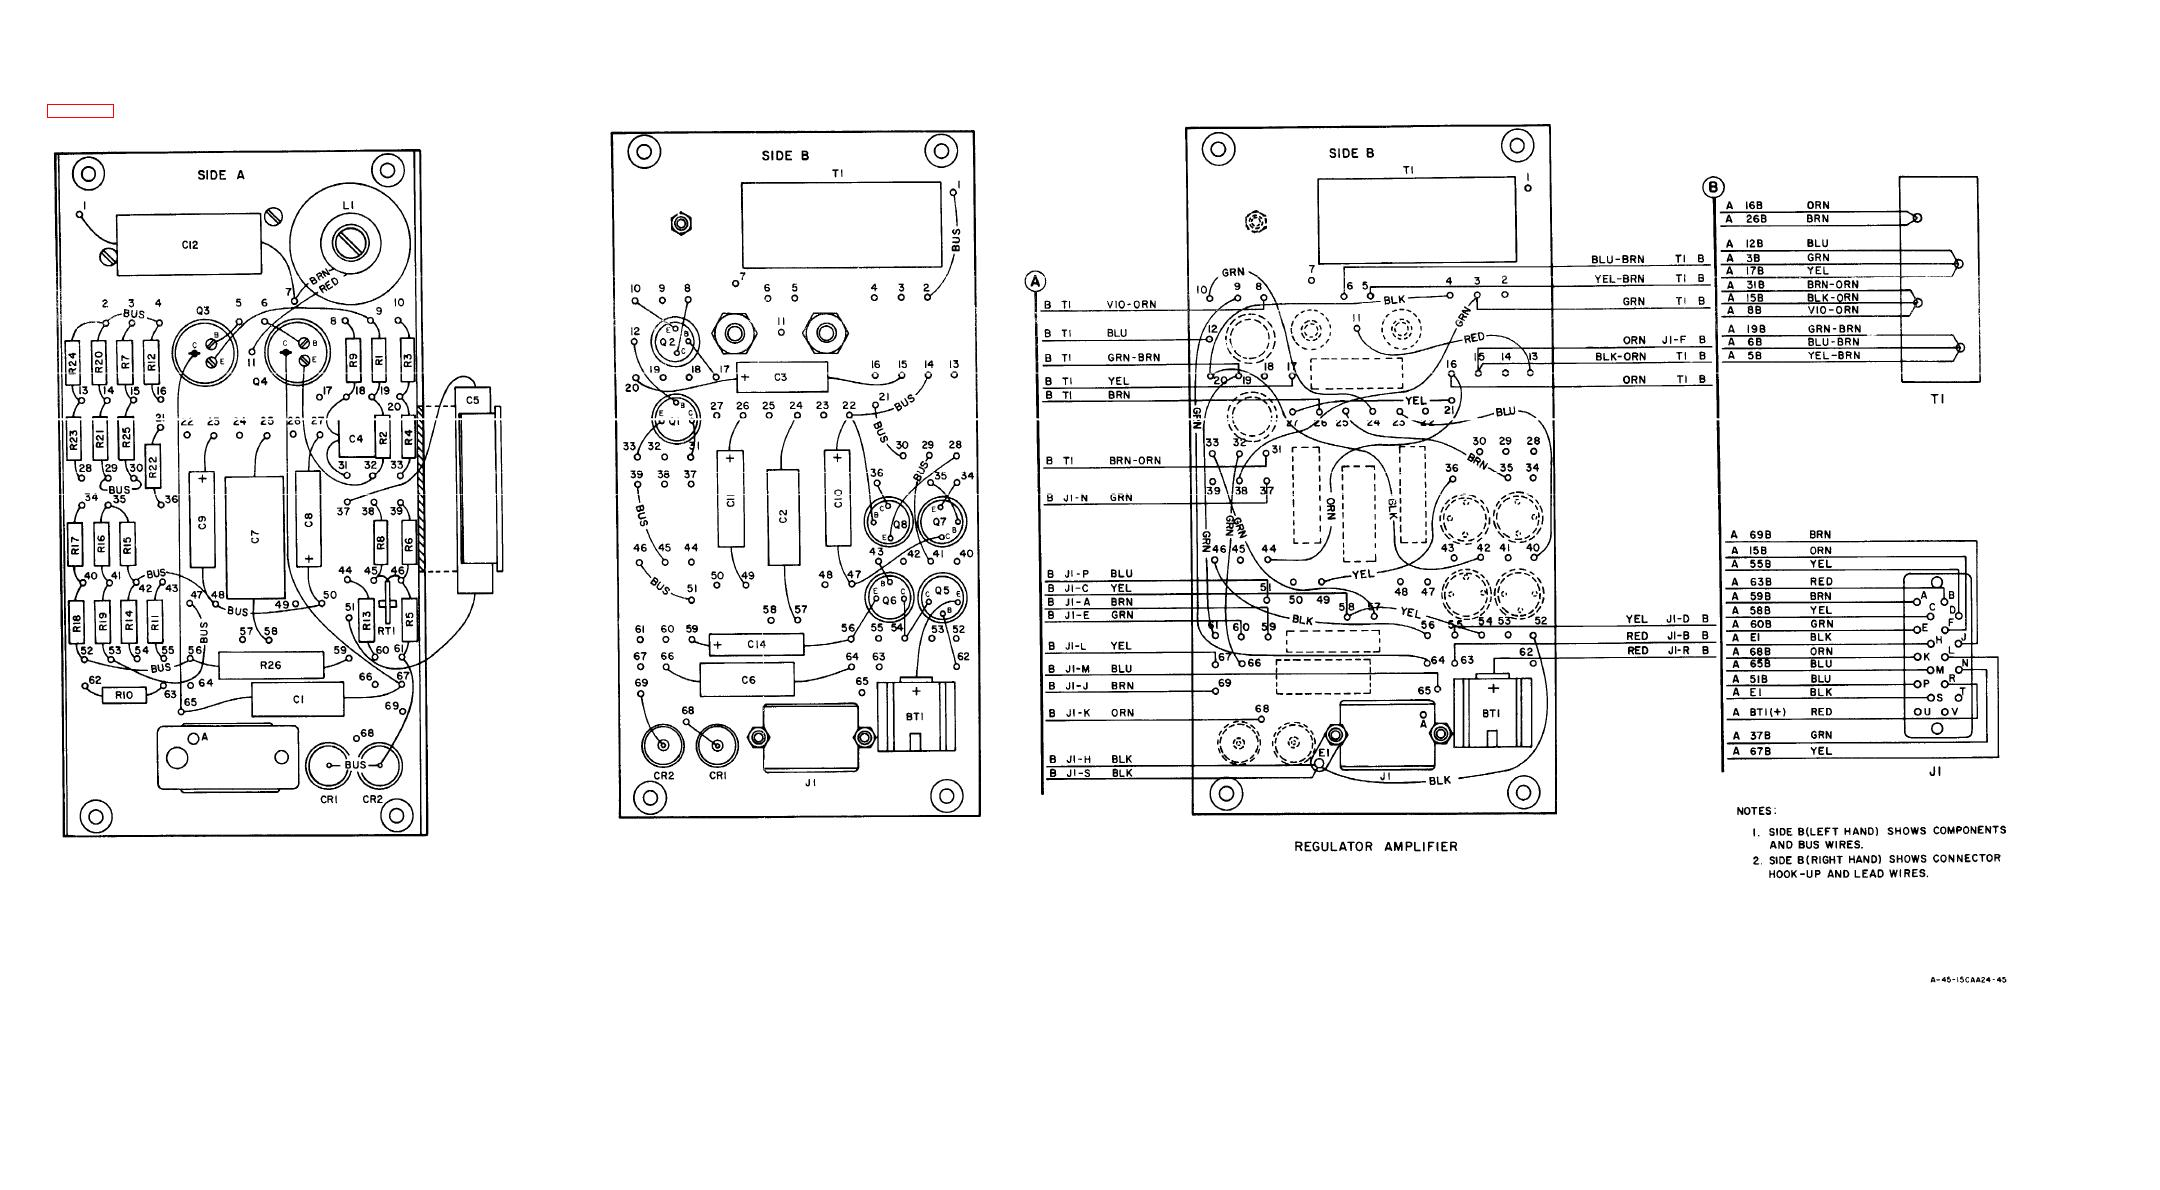 Figure 6 13 Regulator Amplifier Wiring Diagram